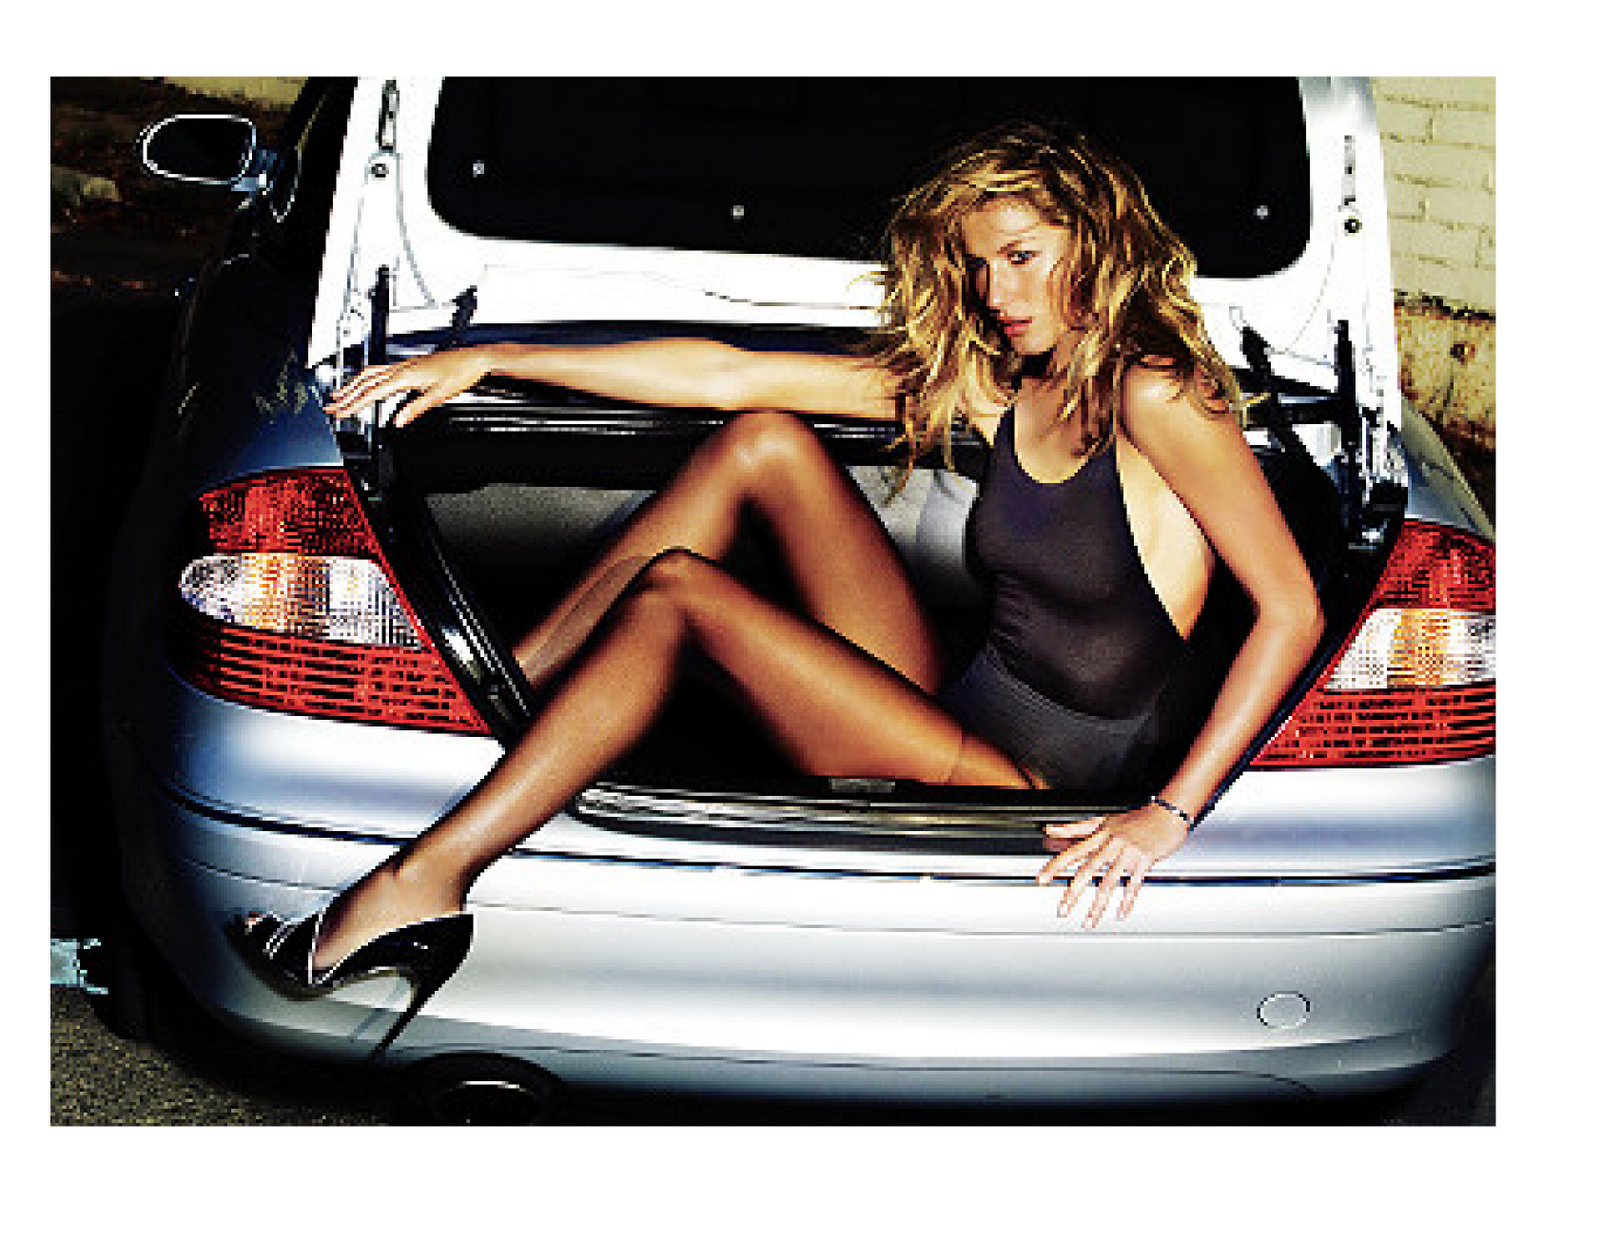 kate+moss+trunk+of+car.png